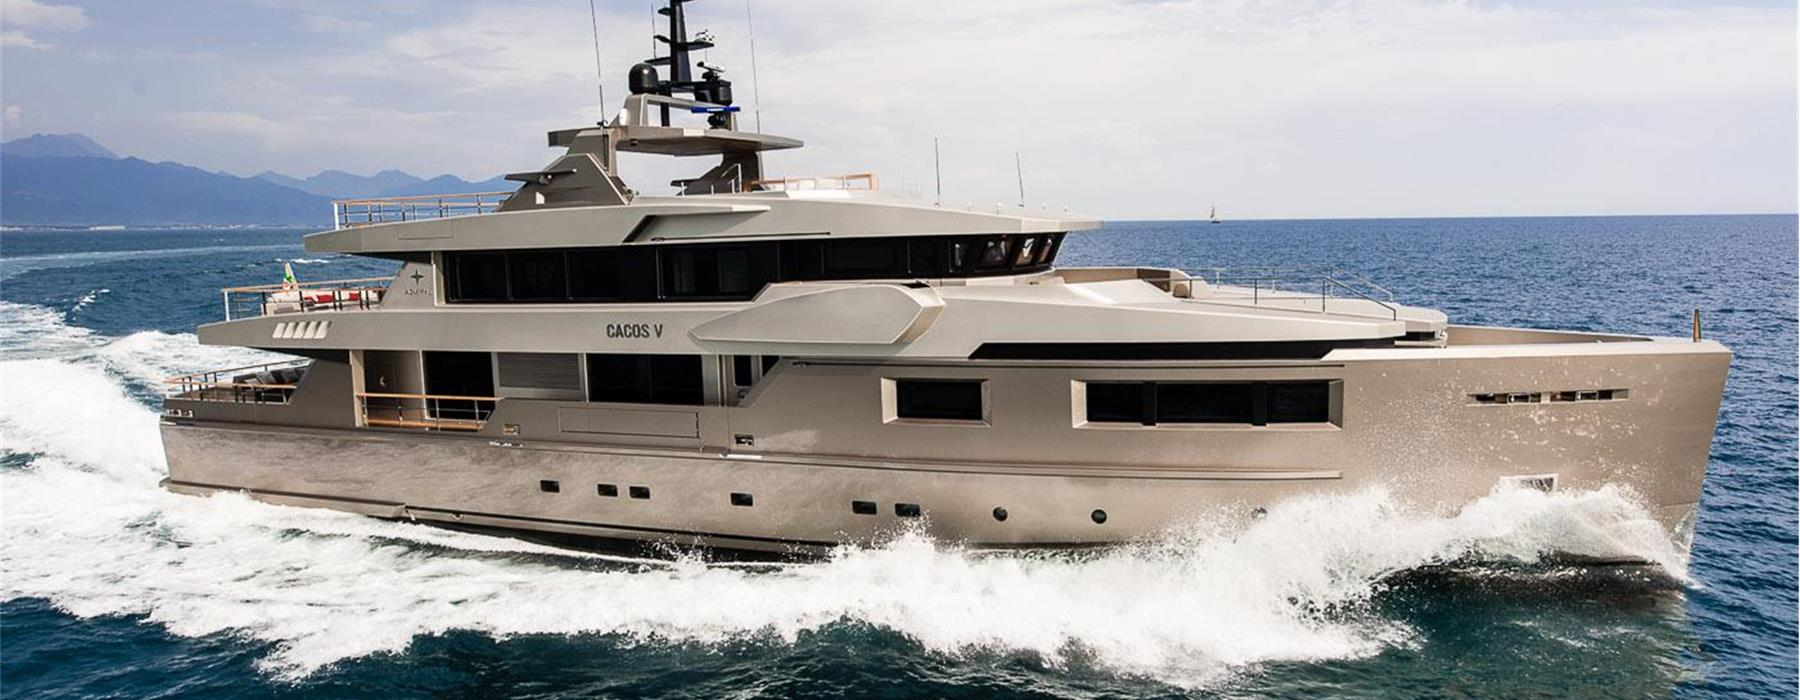 Luca Dini Design and Admiral – The Italian Sea Group for 40m Admiral Cacos V